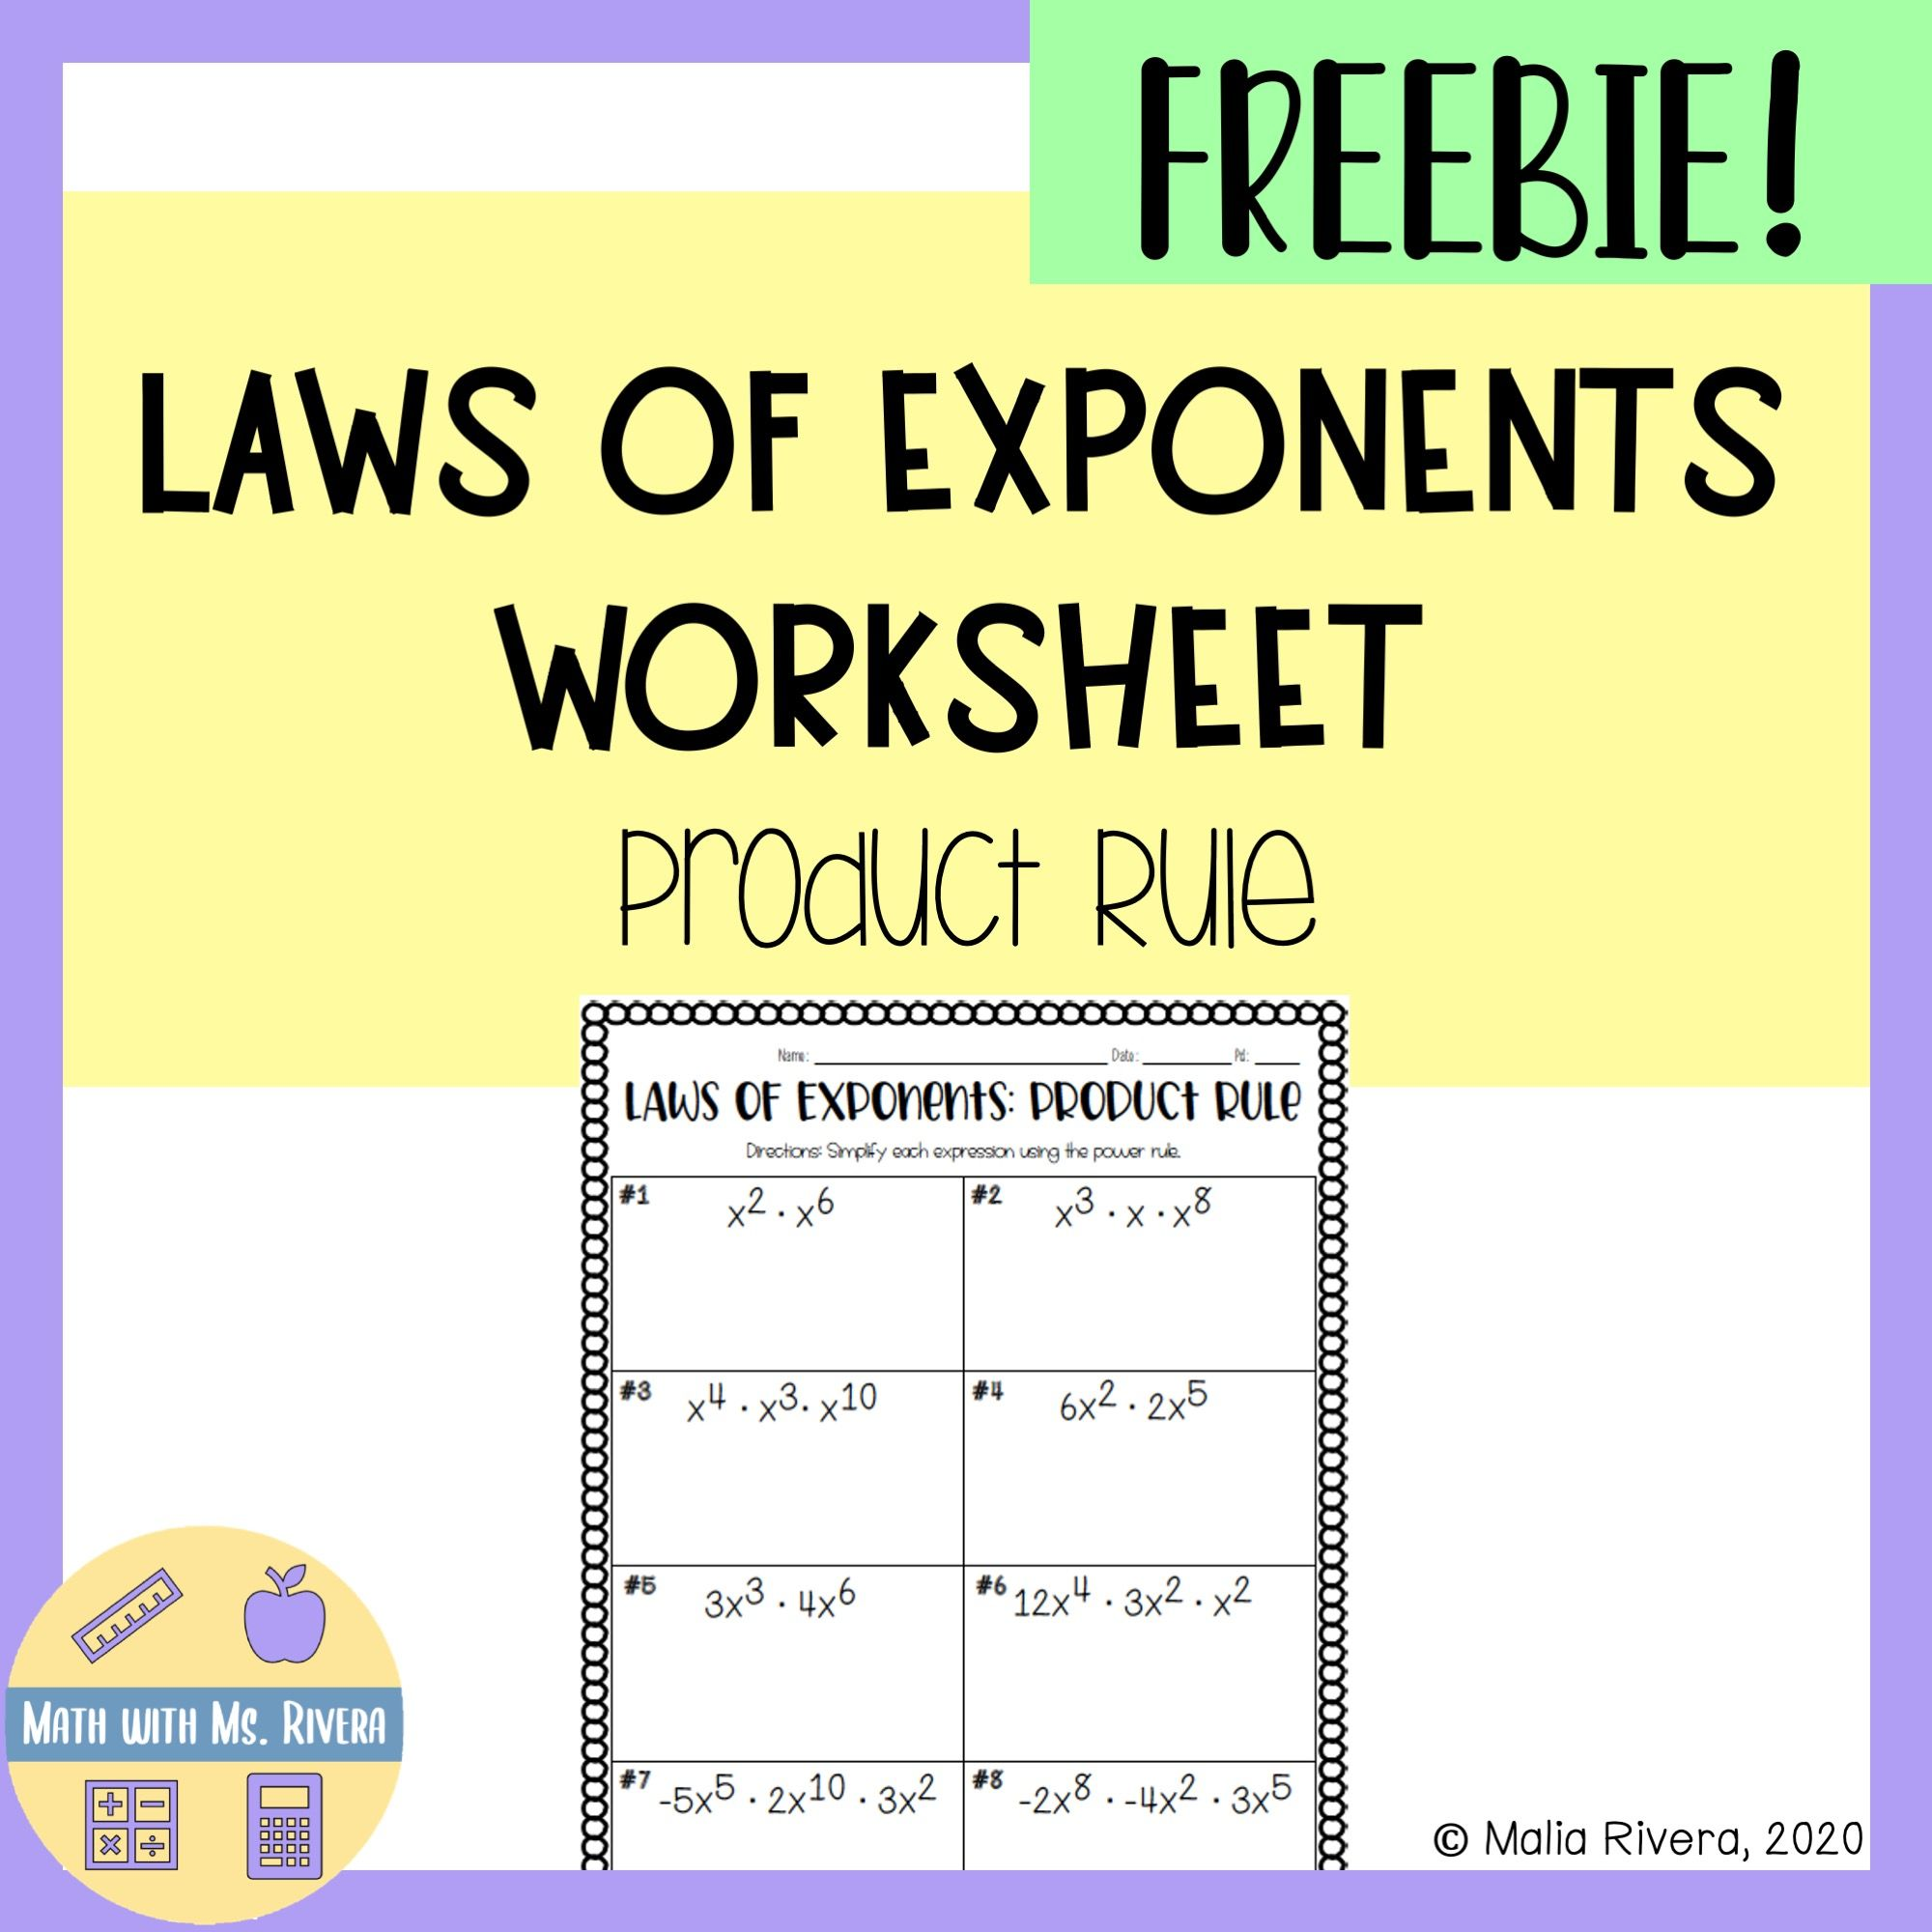 Laws Of Exponents Product Rule Worksheet Freebie Product Rule Exponents Exponent Worksheets